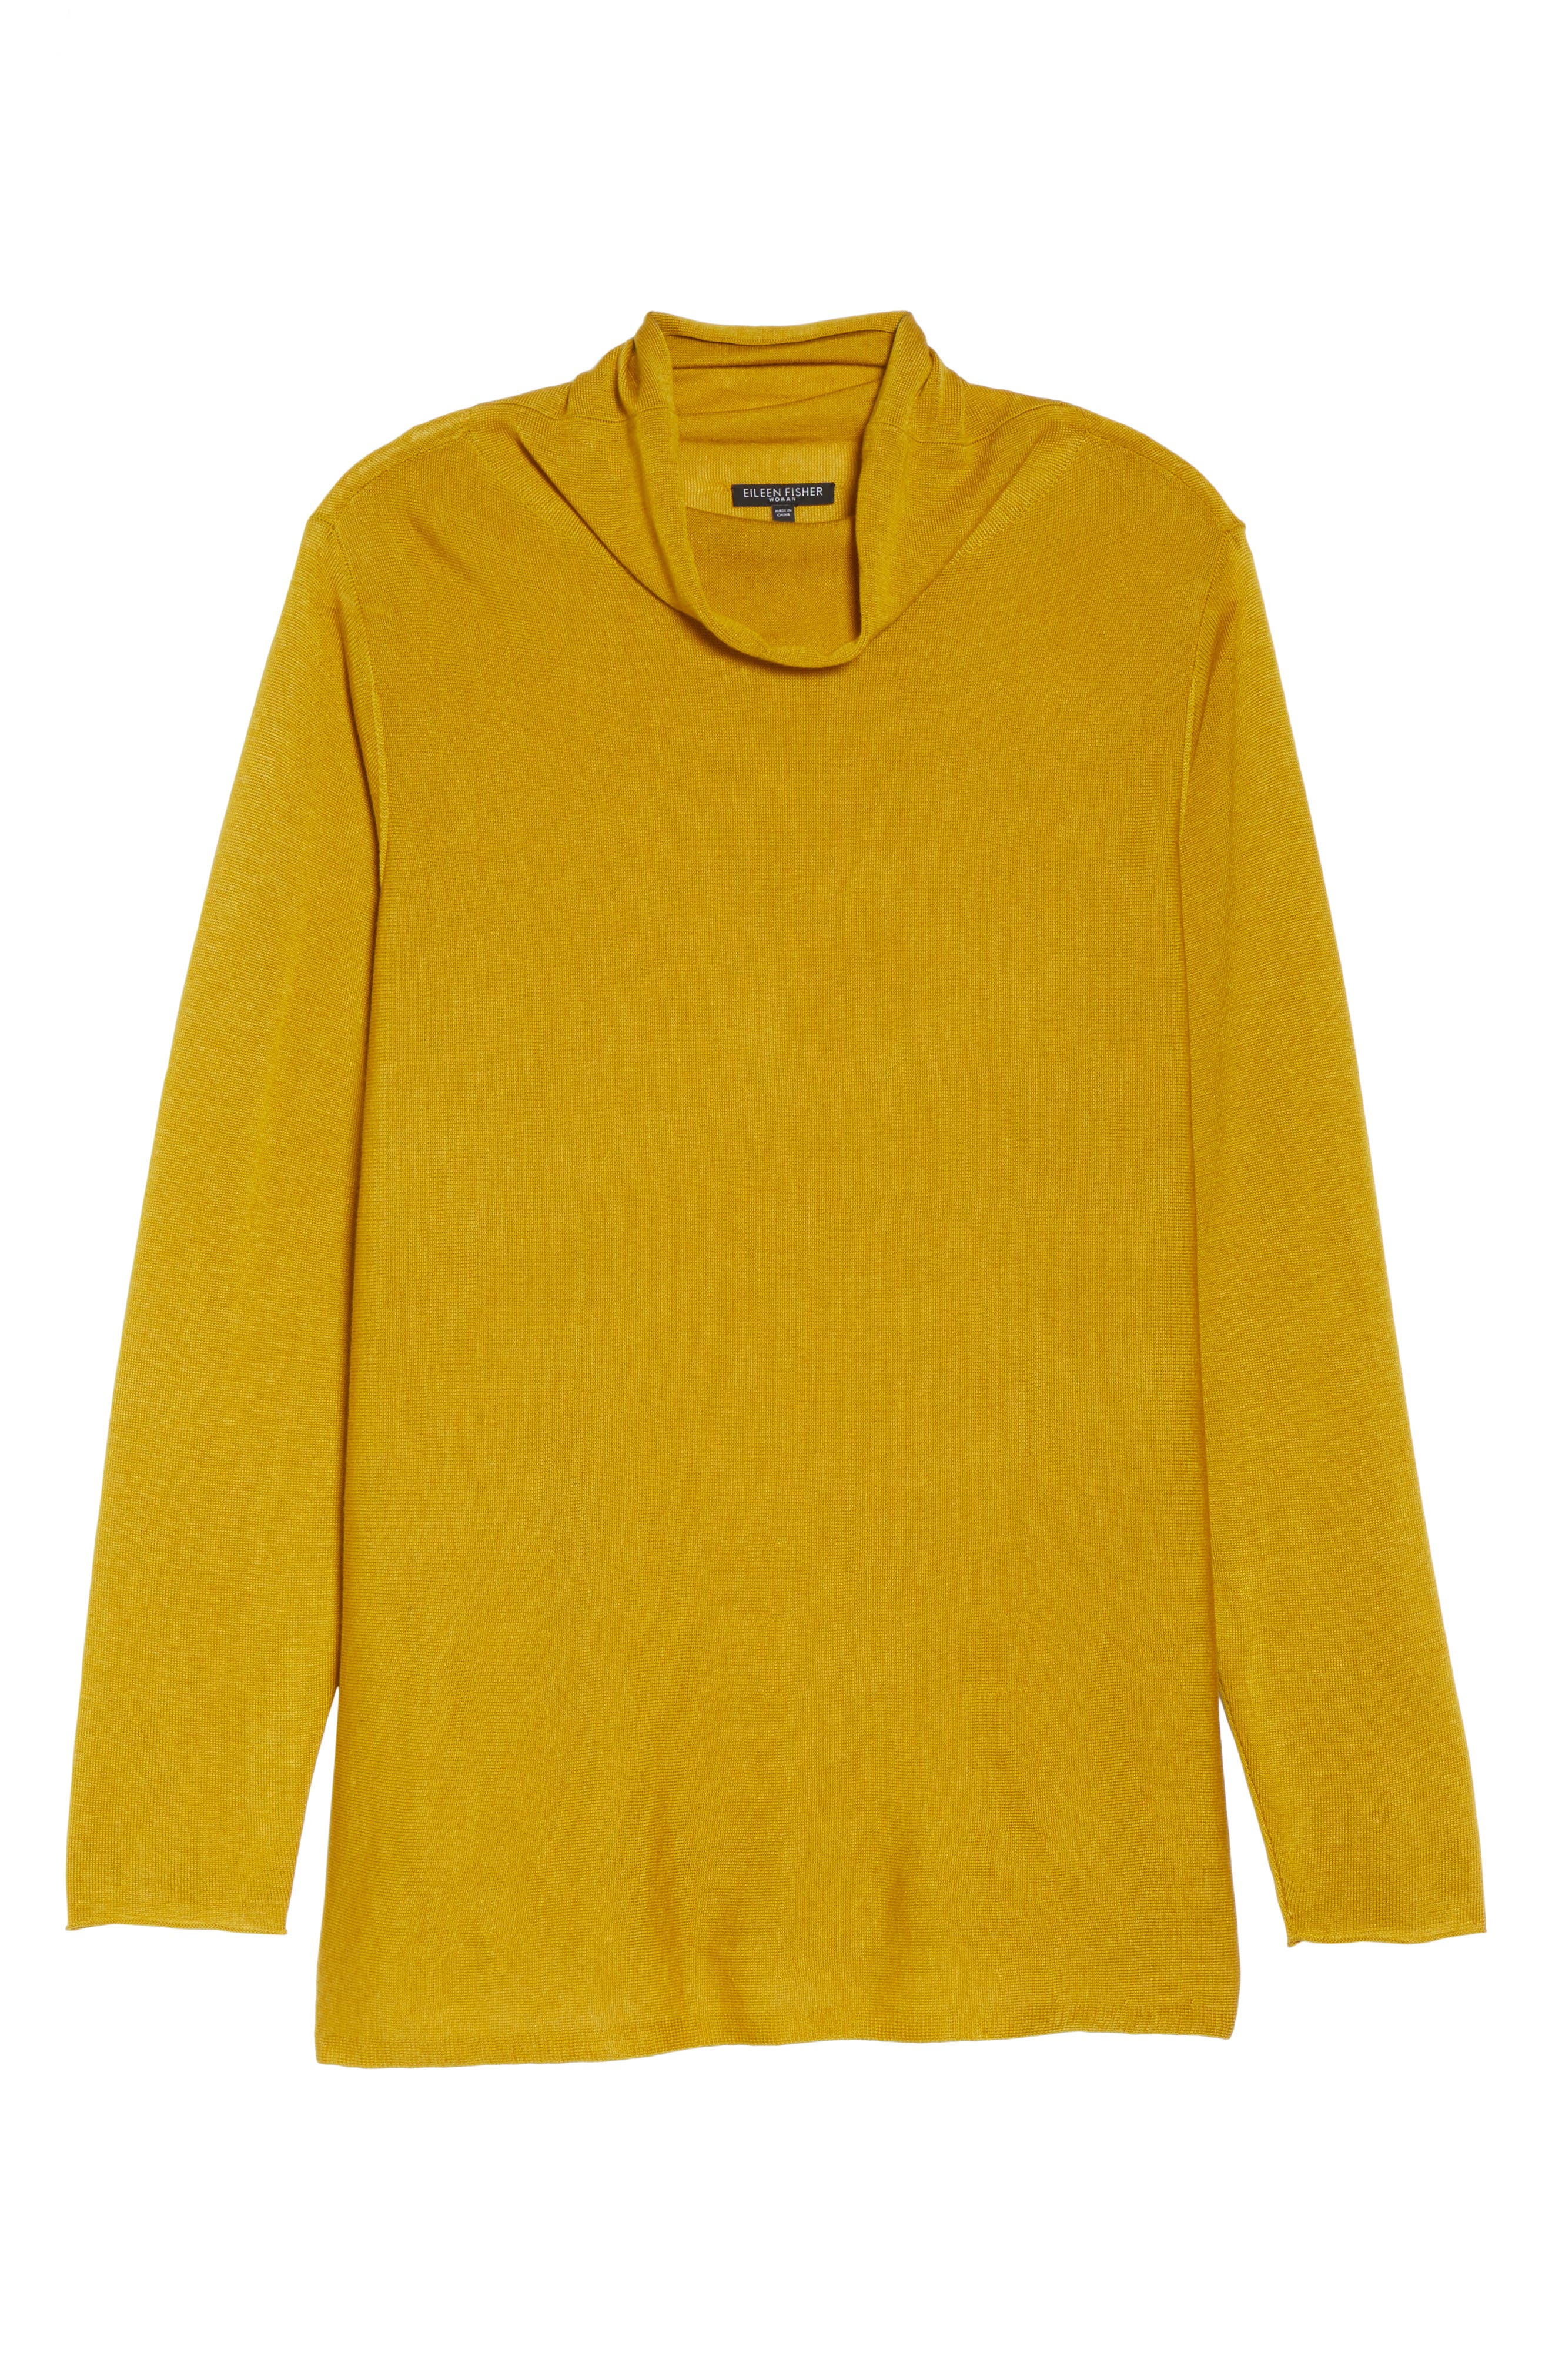 Scrunch Turtleneck Sweater,                             Alternate thumbnail 6, color,                             Mused